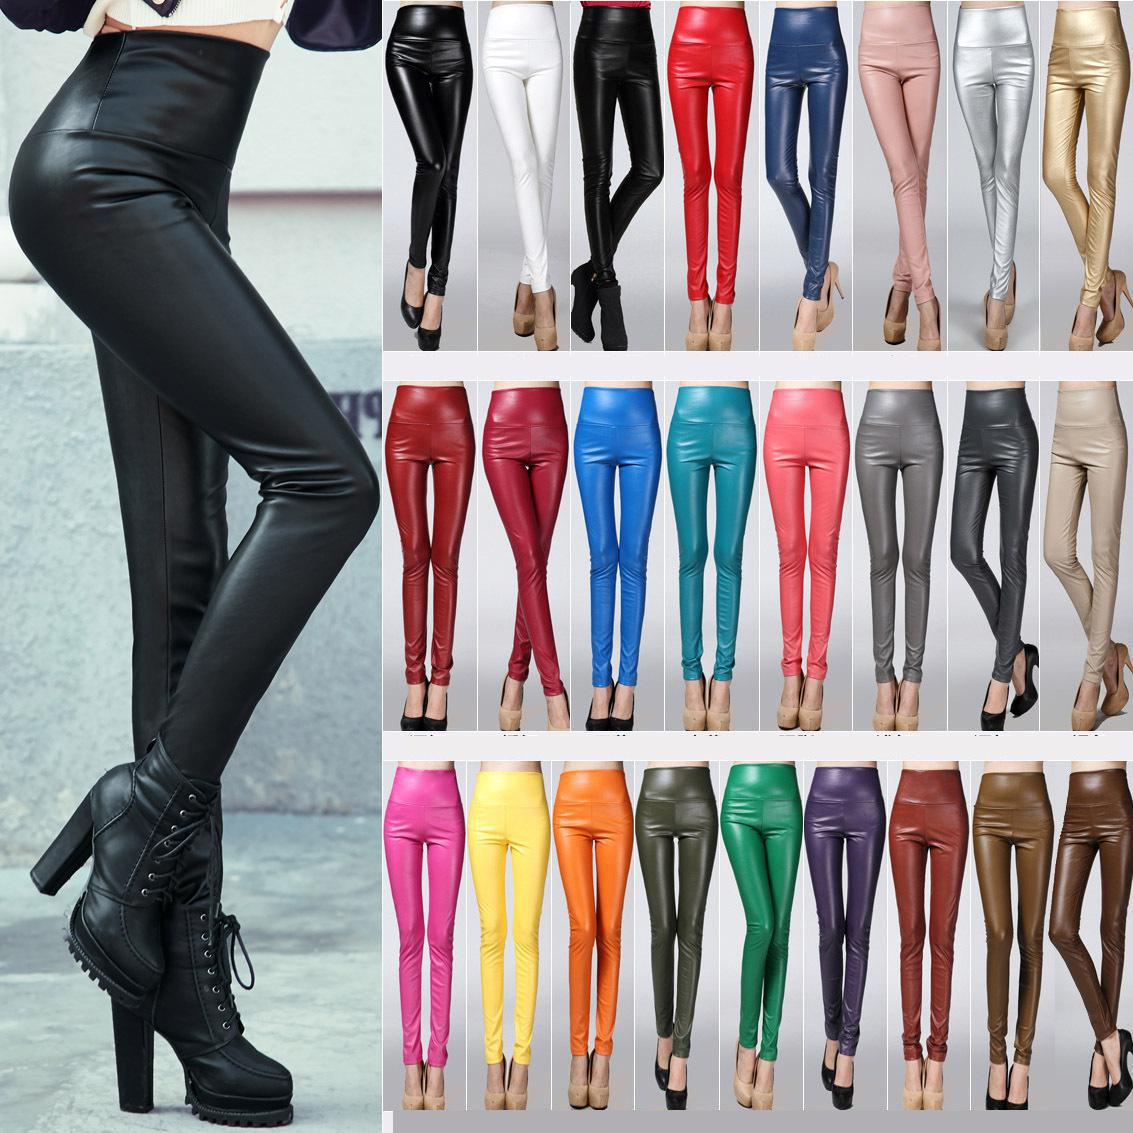 2019 Autumn And Winter Top Selling New Arrival Leather Leggings High Waist Woman Leggings High Quality 25 Colors Available